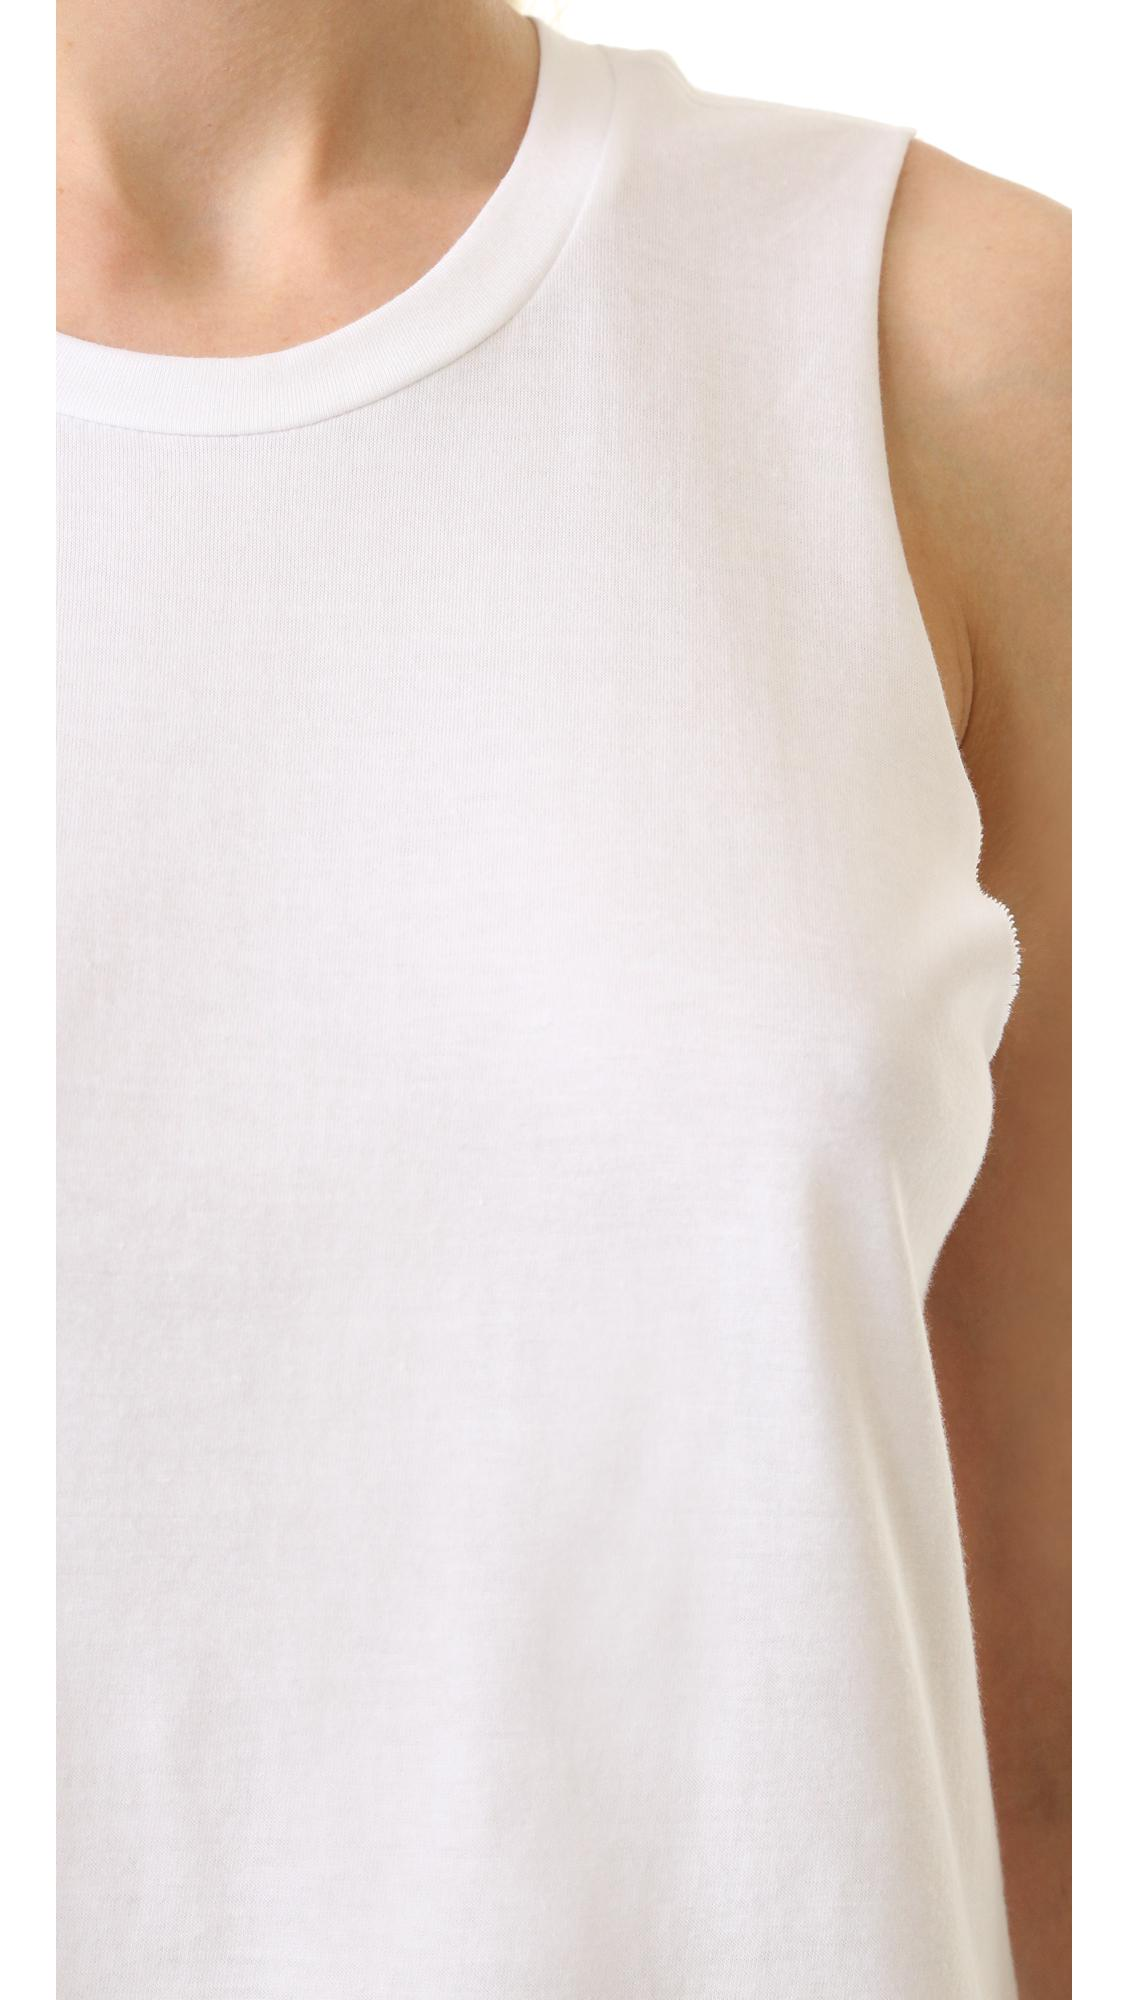 3x1 Cotton Muscle Tank in White